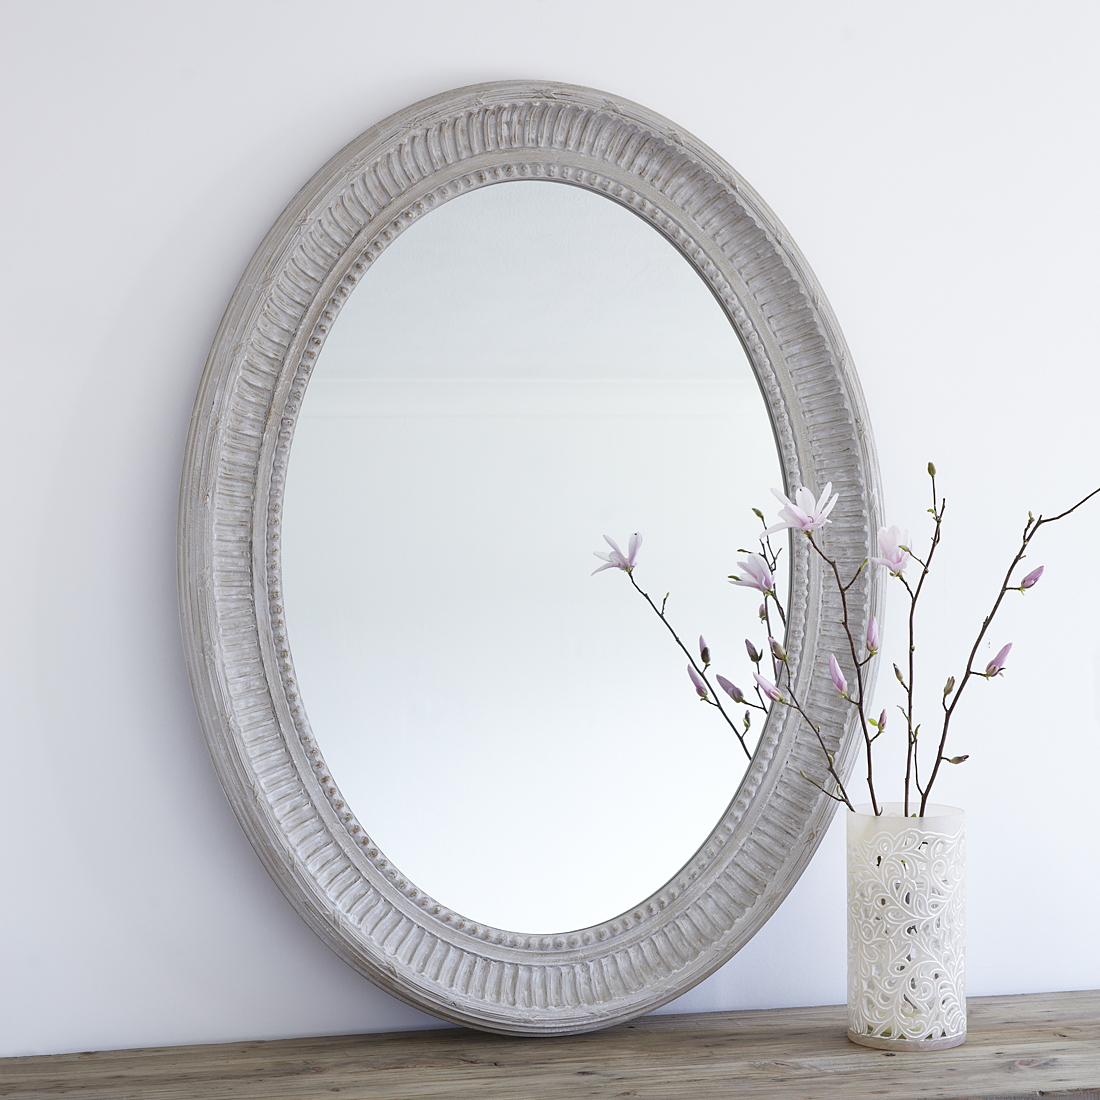 2020 Large Wall Mirrors With Wood Frame With Large Grey Oval Wooden Wall Mirror (View 9 of 20)